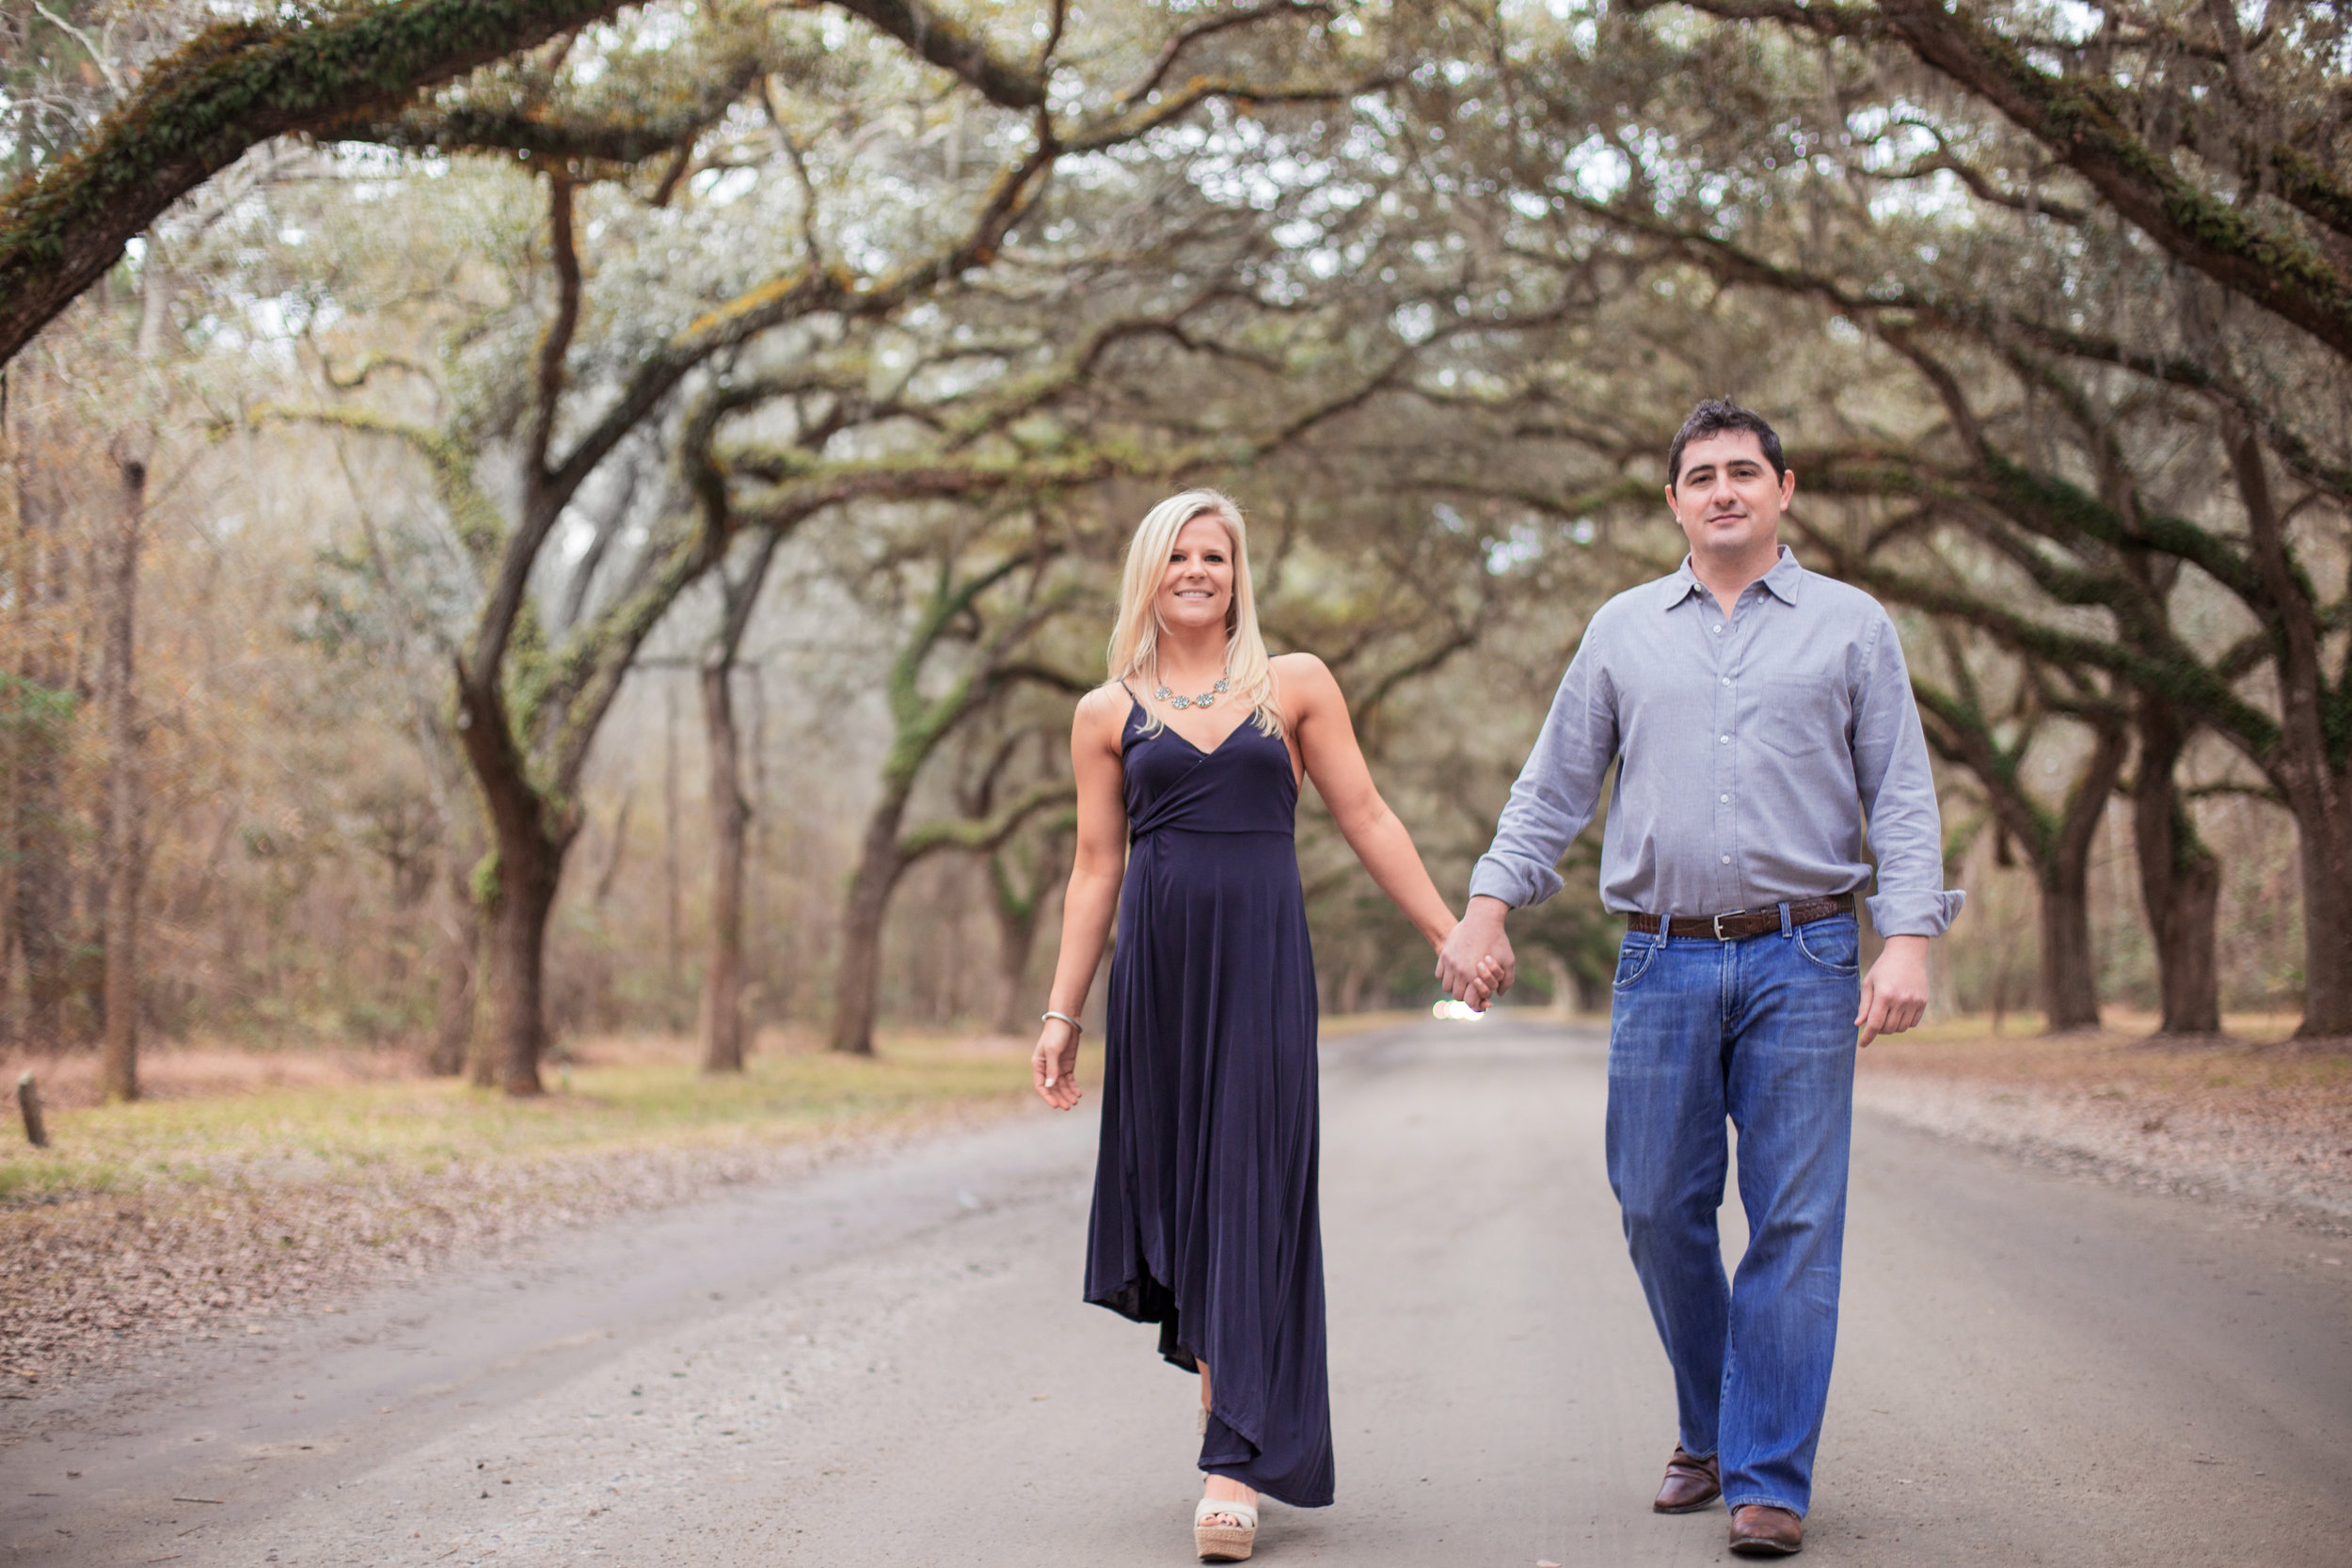 wormsloe-engagement-photos-man-and-woman-in-park _MG_9727.jpg